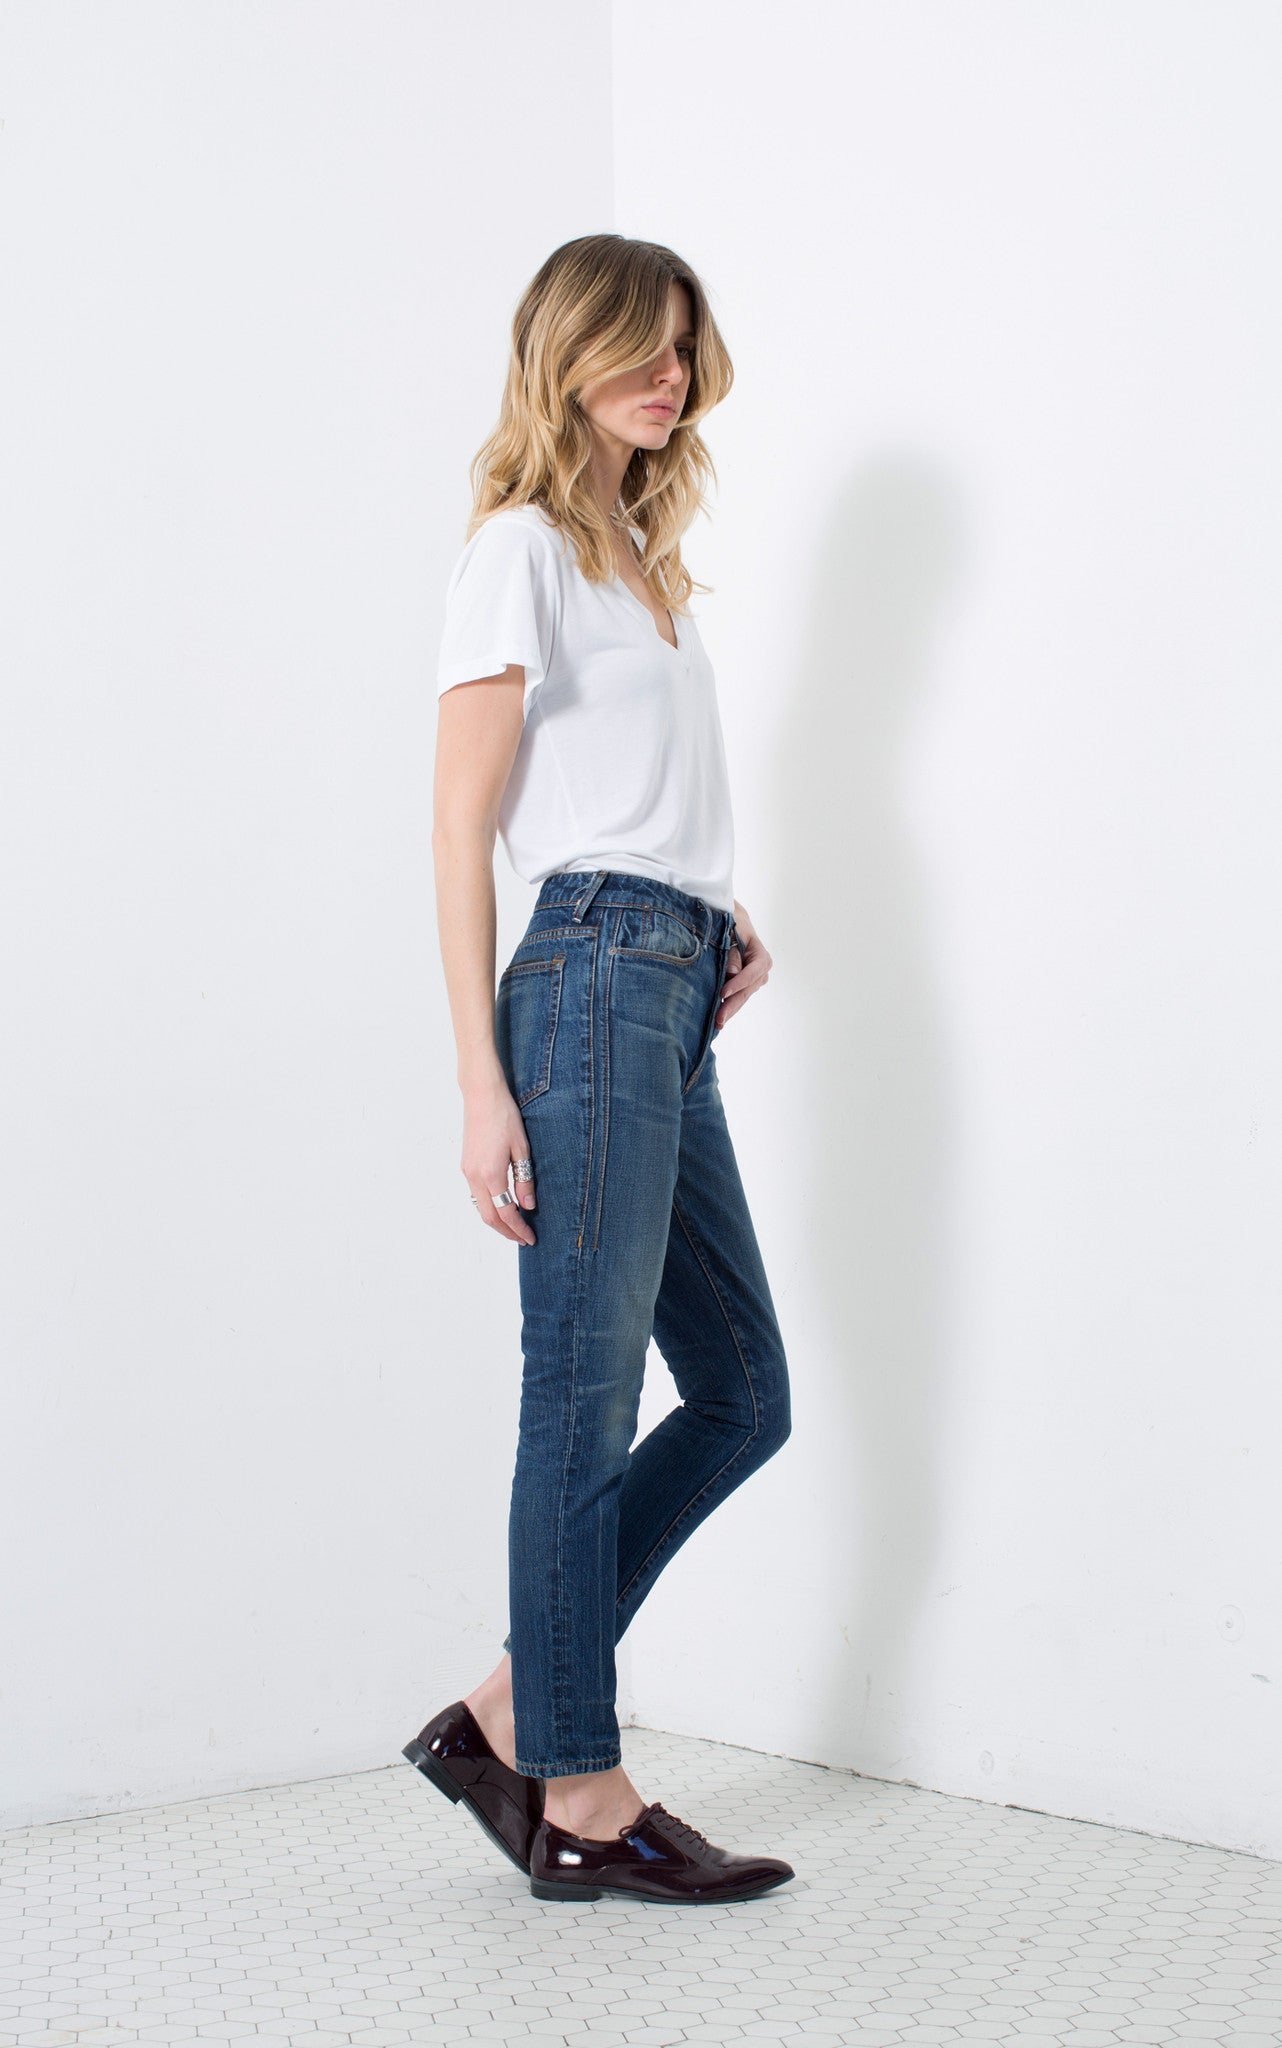 HIGH RISE SLIM in QUINN | MADE TO ORDER